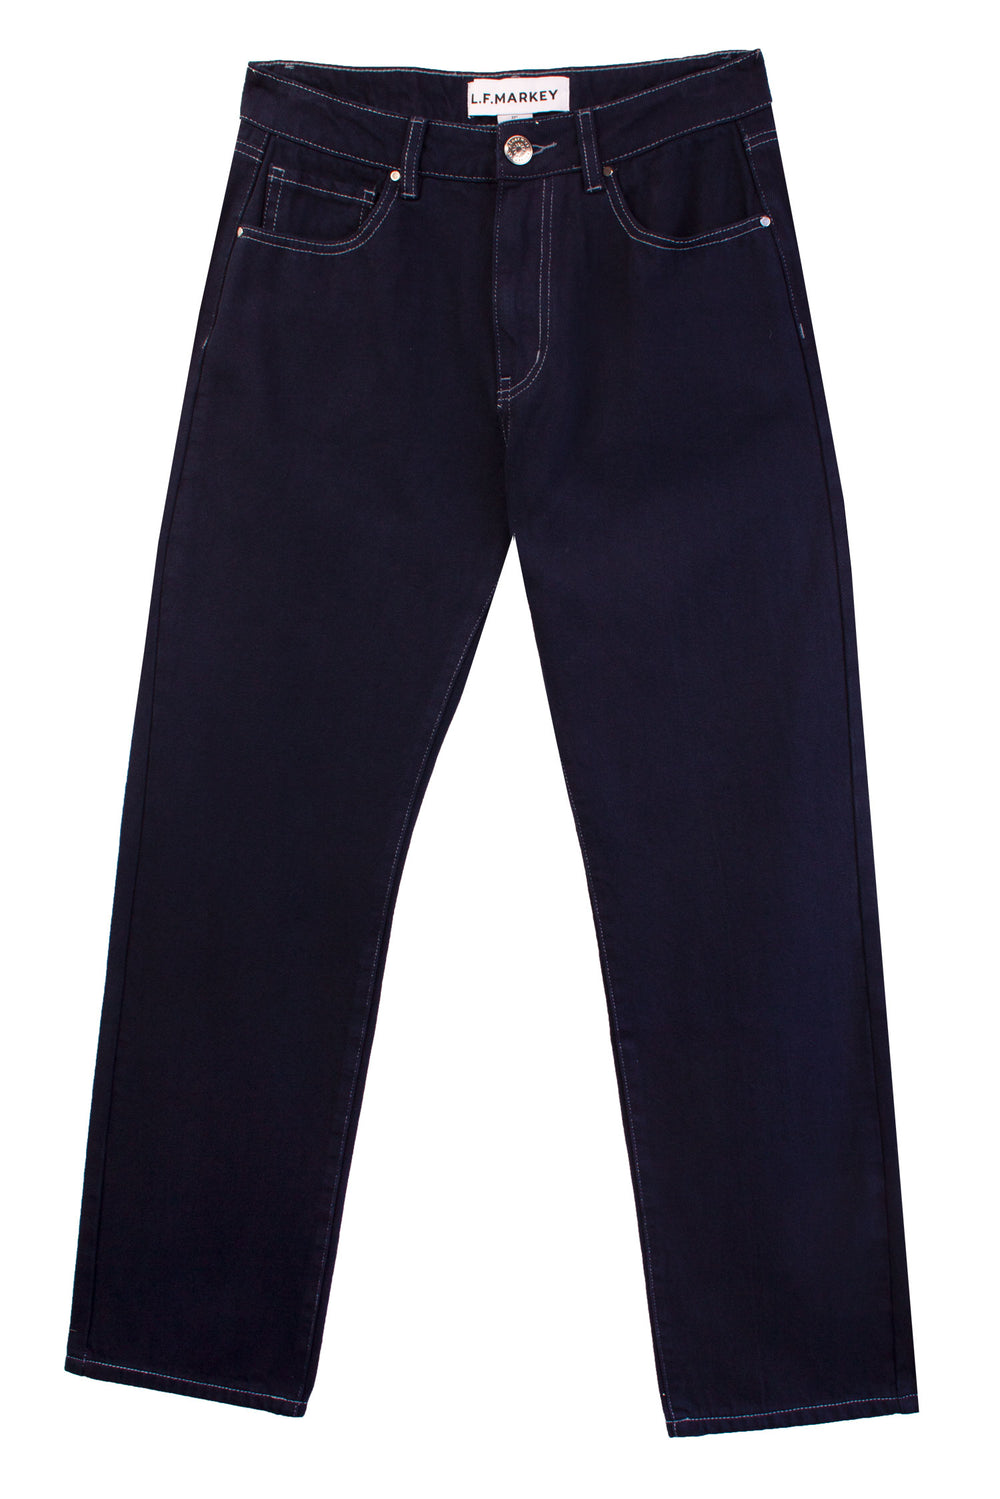 Straight Cut Jeans Navy